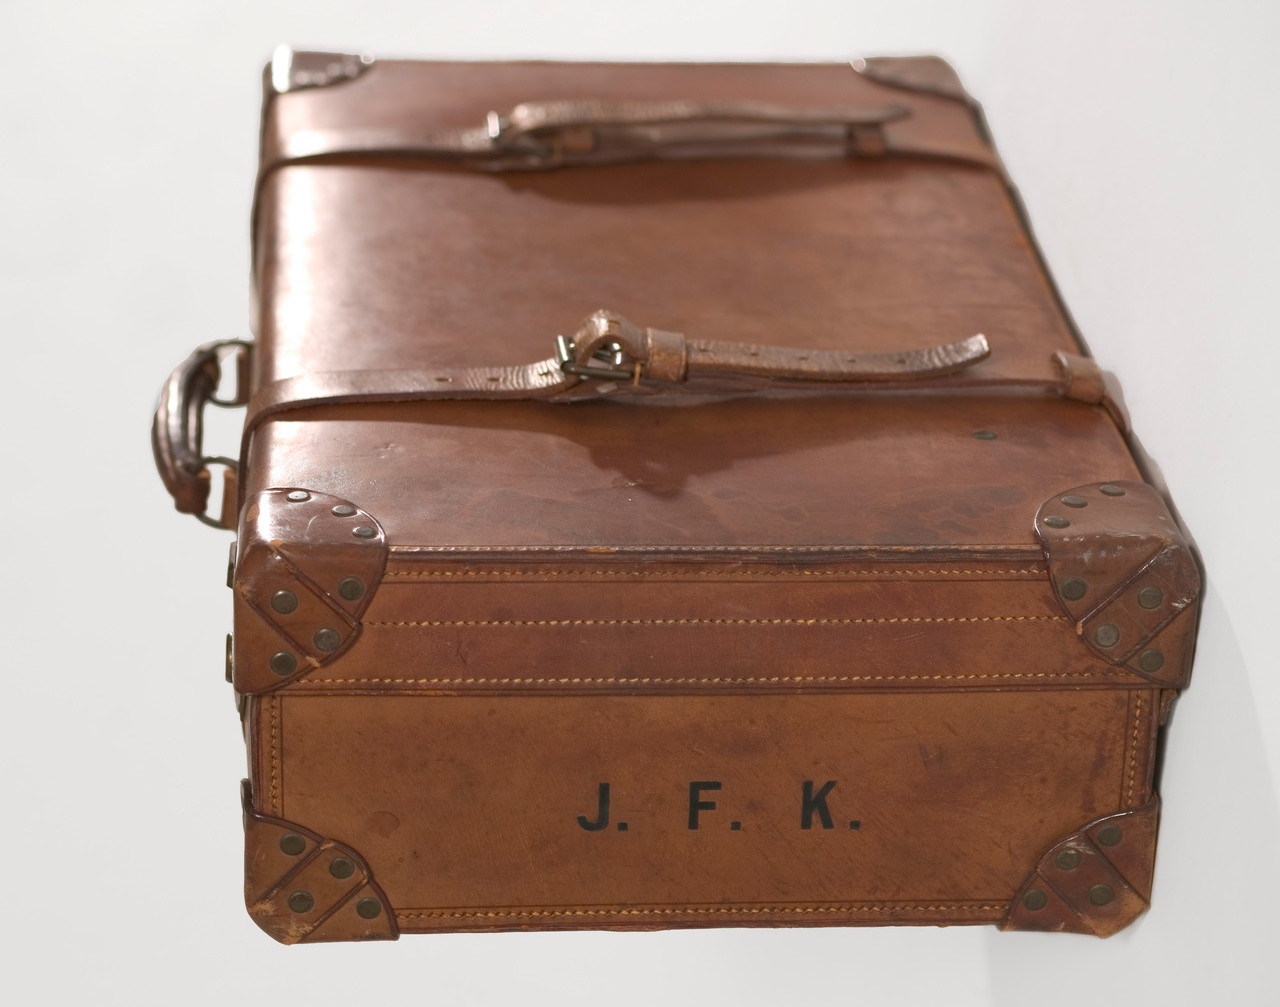 © CAMERA WORK · John F. Kennedy's monogrammed trunk